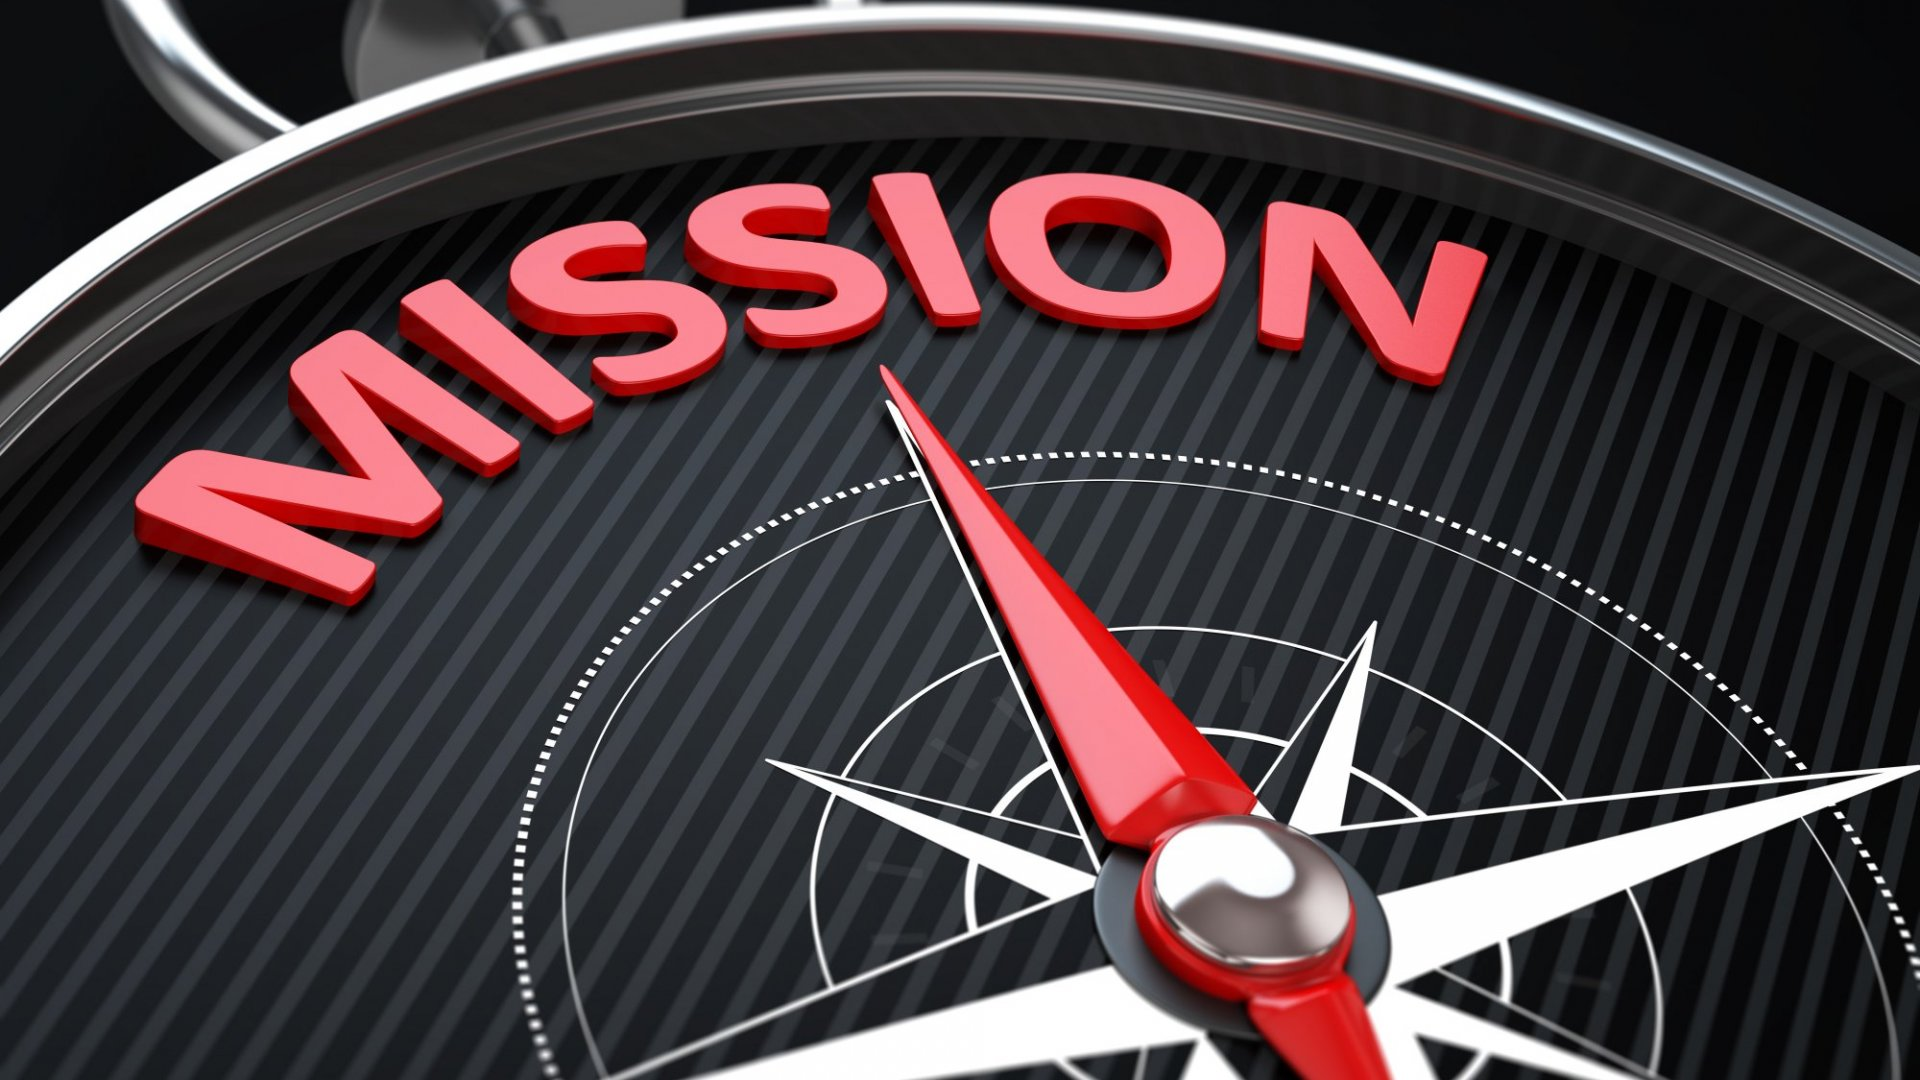 Build a Better Mission Statement by Avoiding This Top Mistake